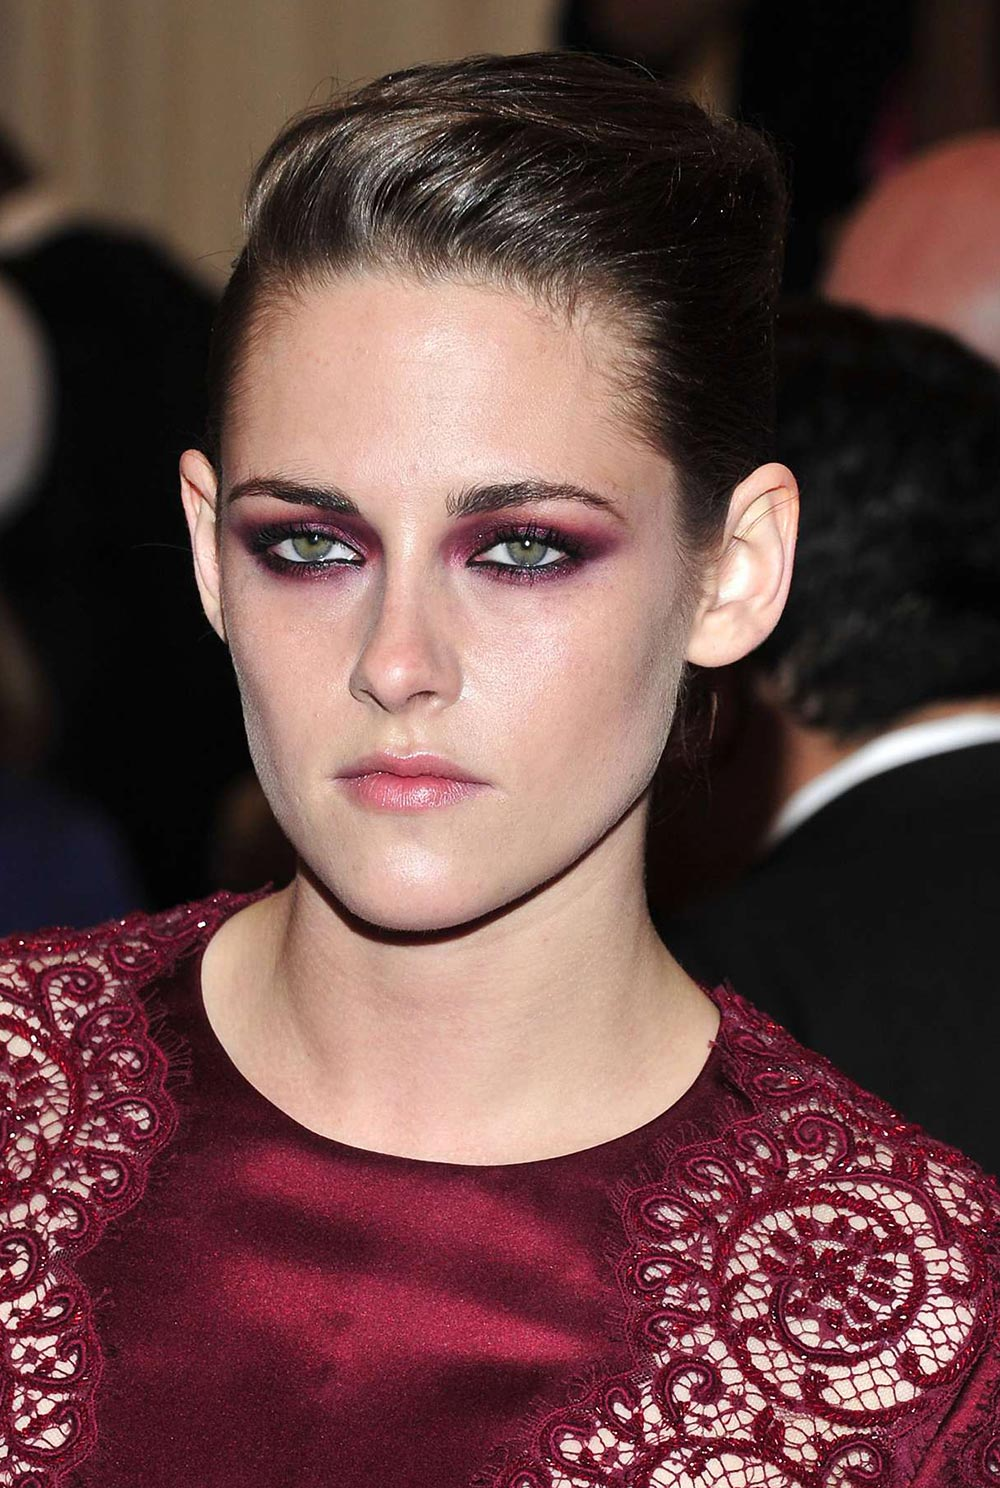 Kristen Stewart's burgundy smoky eye Makeup Look at 2013 Met Gala